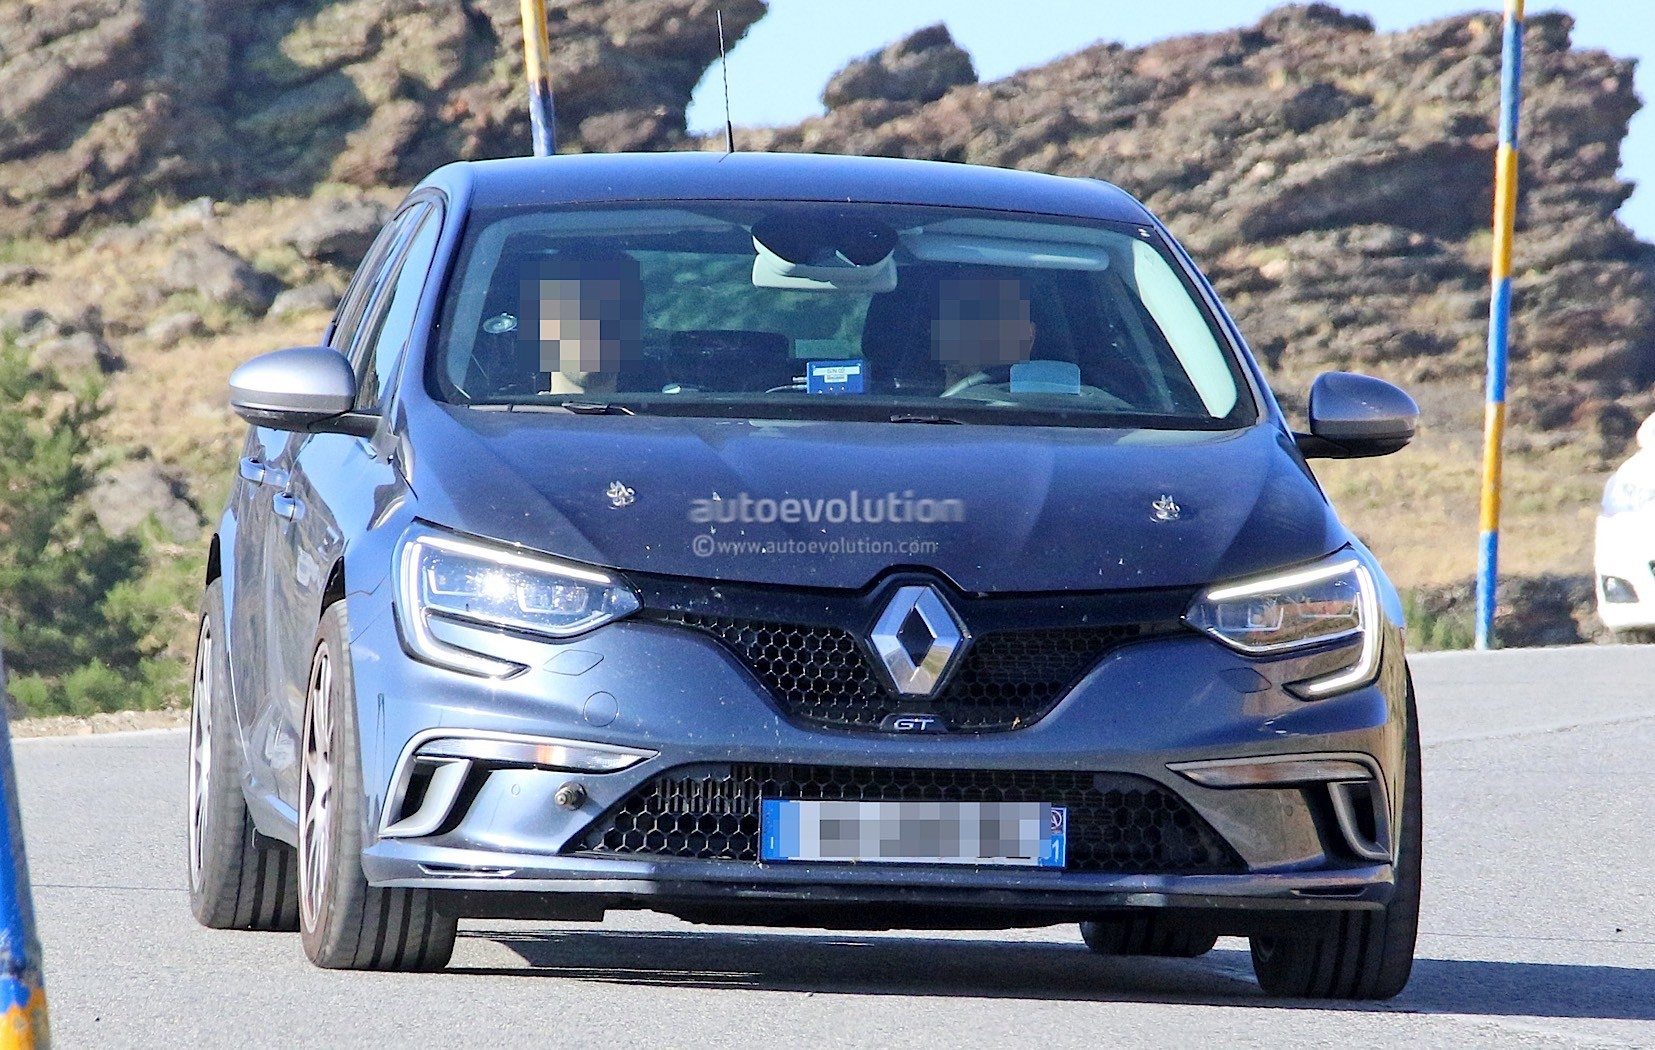 2018 renault megane rs spied wearing megane gt clothes autoevolution. Black Bedroom Furniture Sets. Home Design Ideas